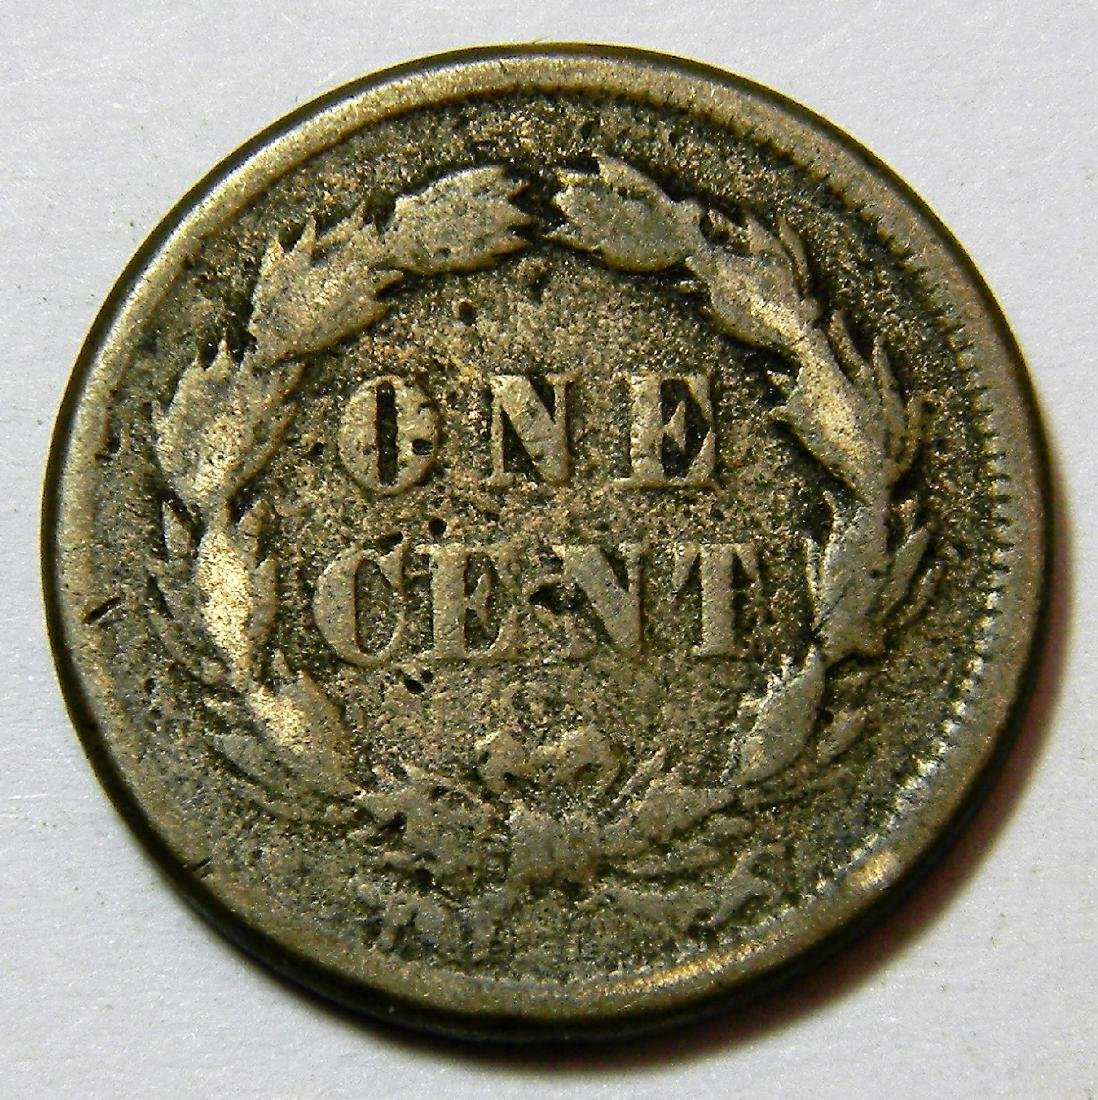 1859 Indian Head Cent, Type 1 Copper-Nickel Cent, First - 2